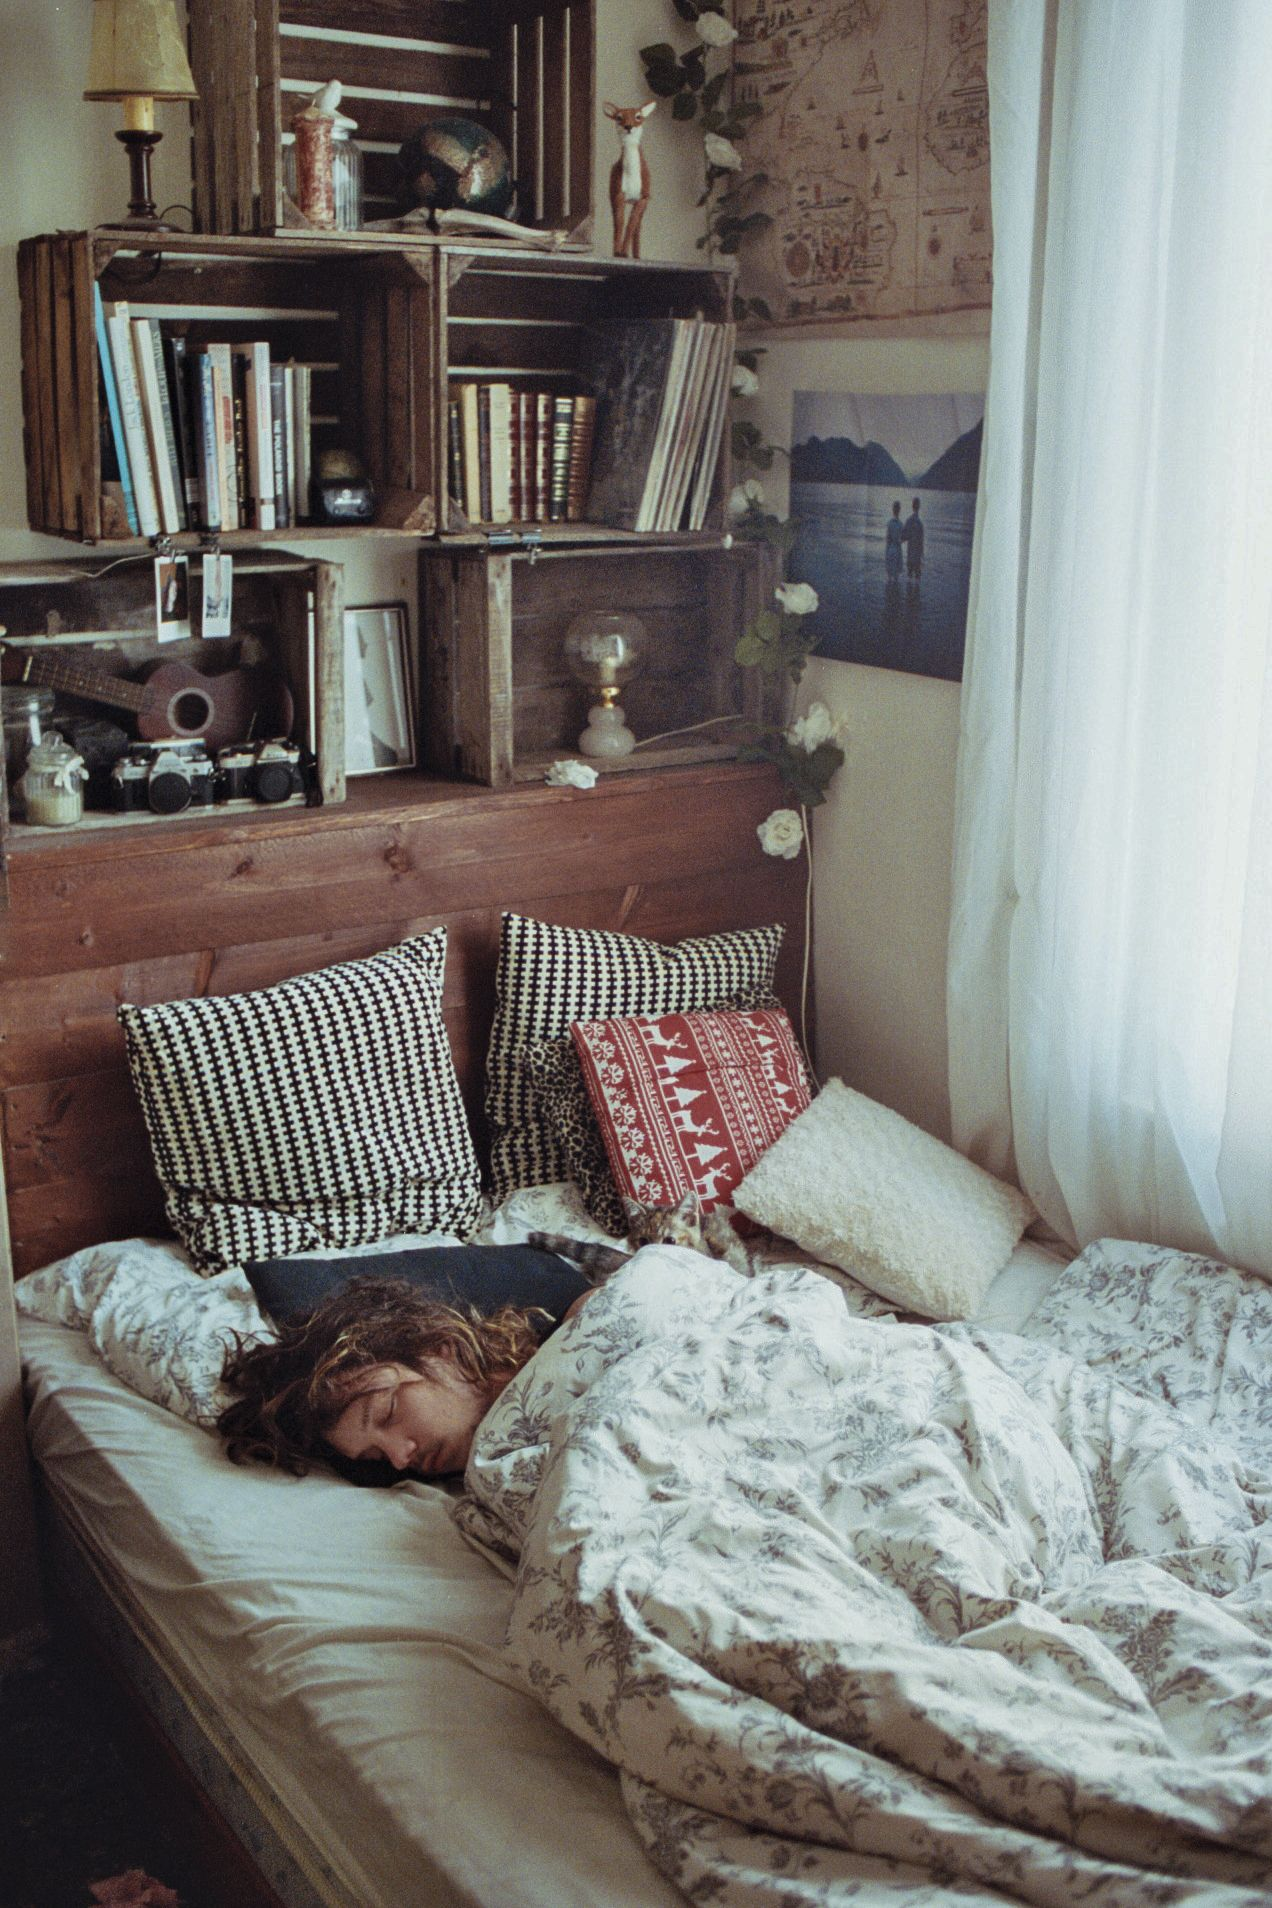 This looks like the most comfiest place in the world